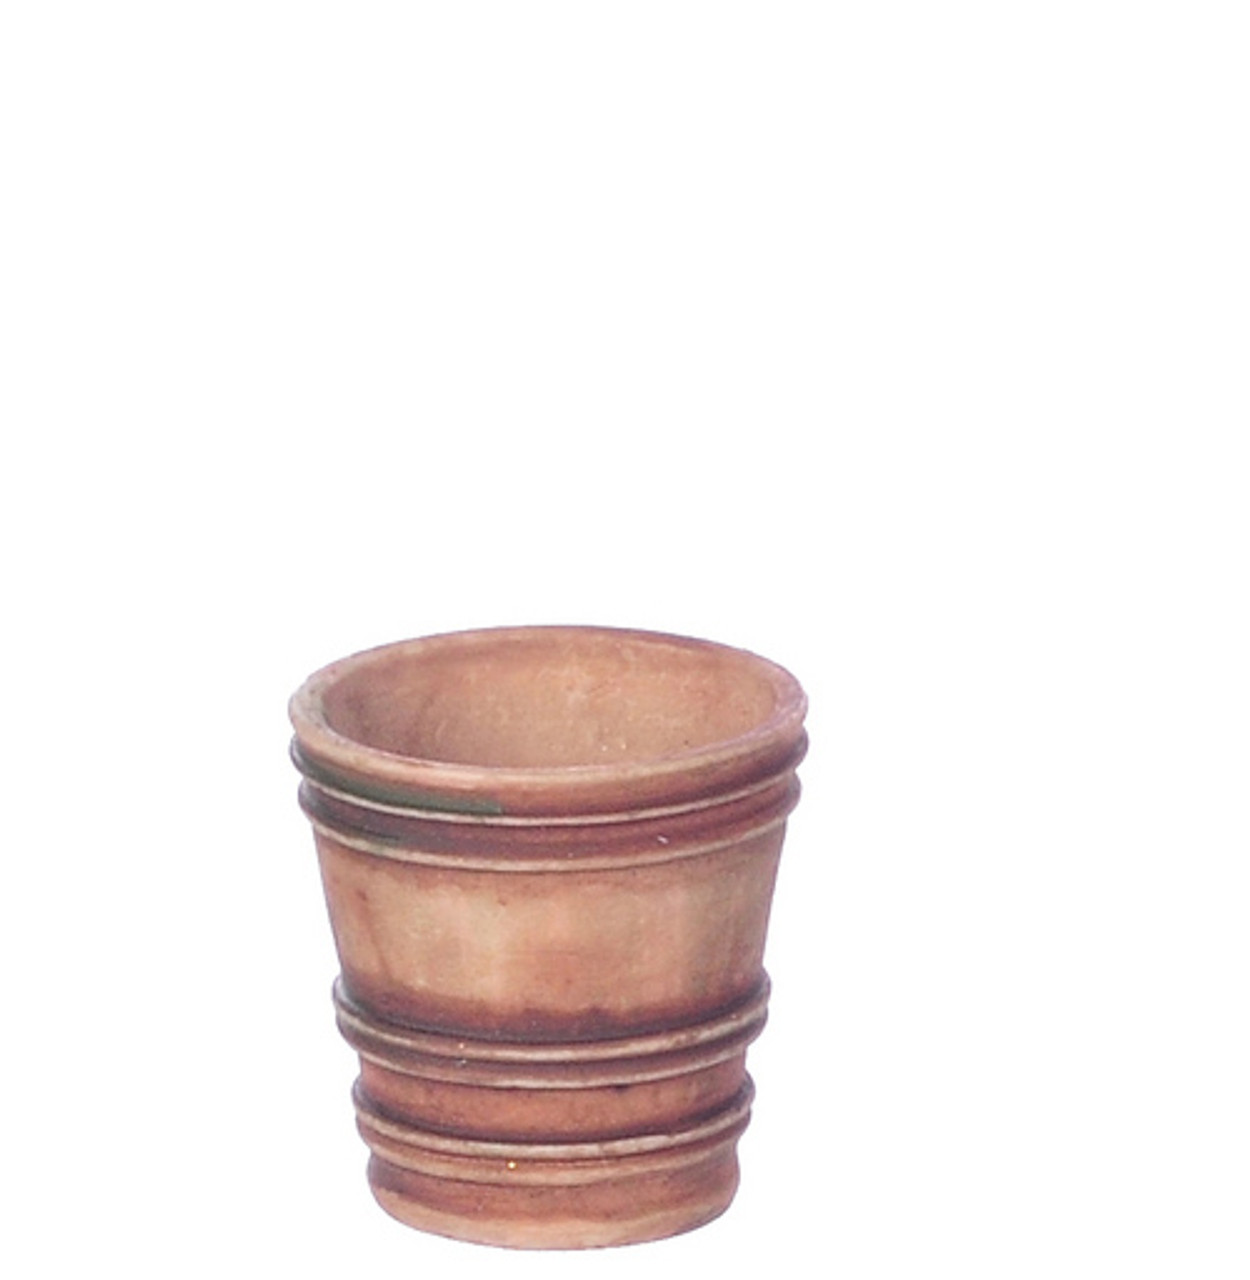 Dollhouse City - Dollhouse Miniatures French Country Pot - Medium and Gray